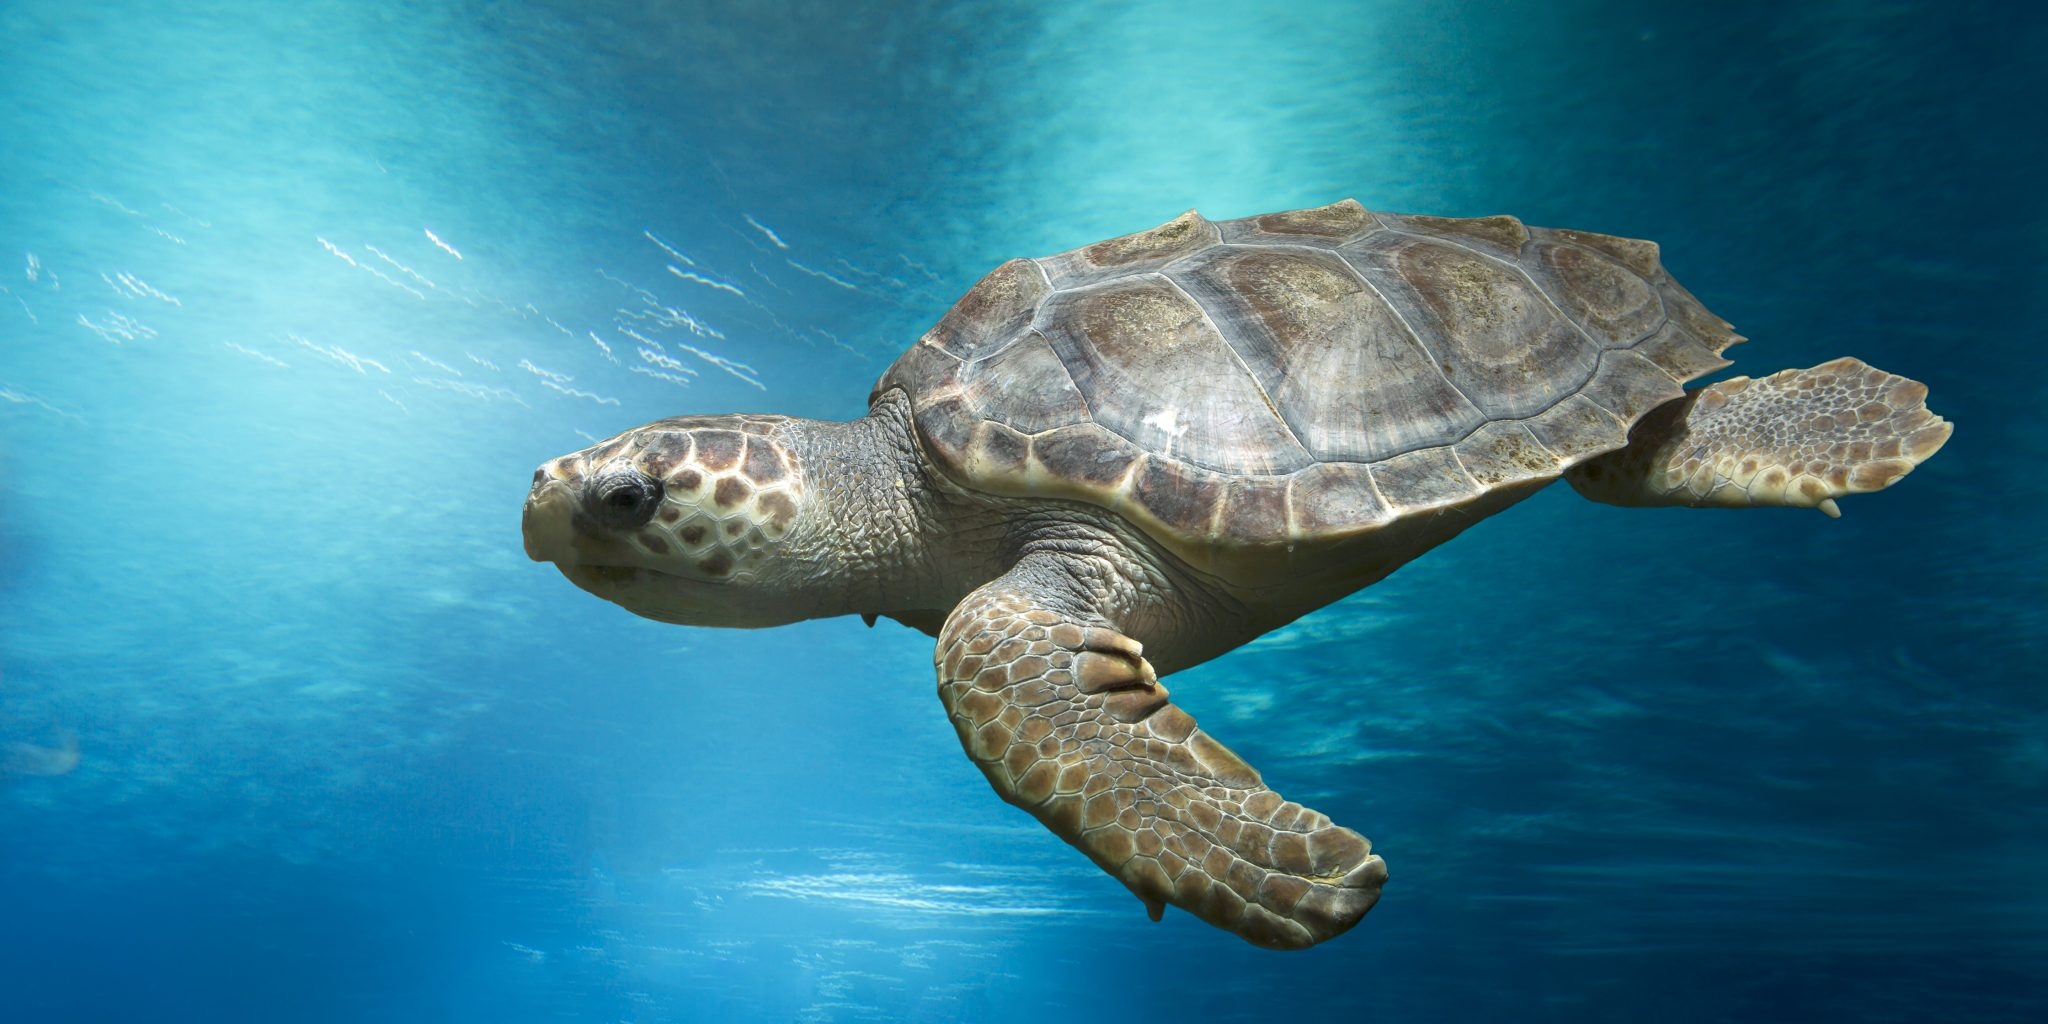 These Fishermen are Now Protecting the World's Most Endangered Sea Turtles Instead of Selling Them!